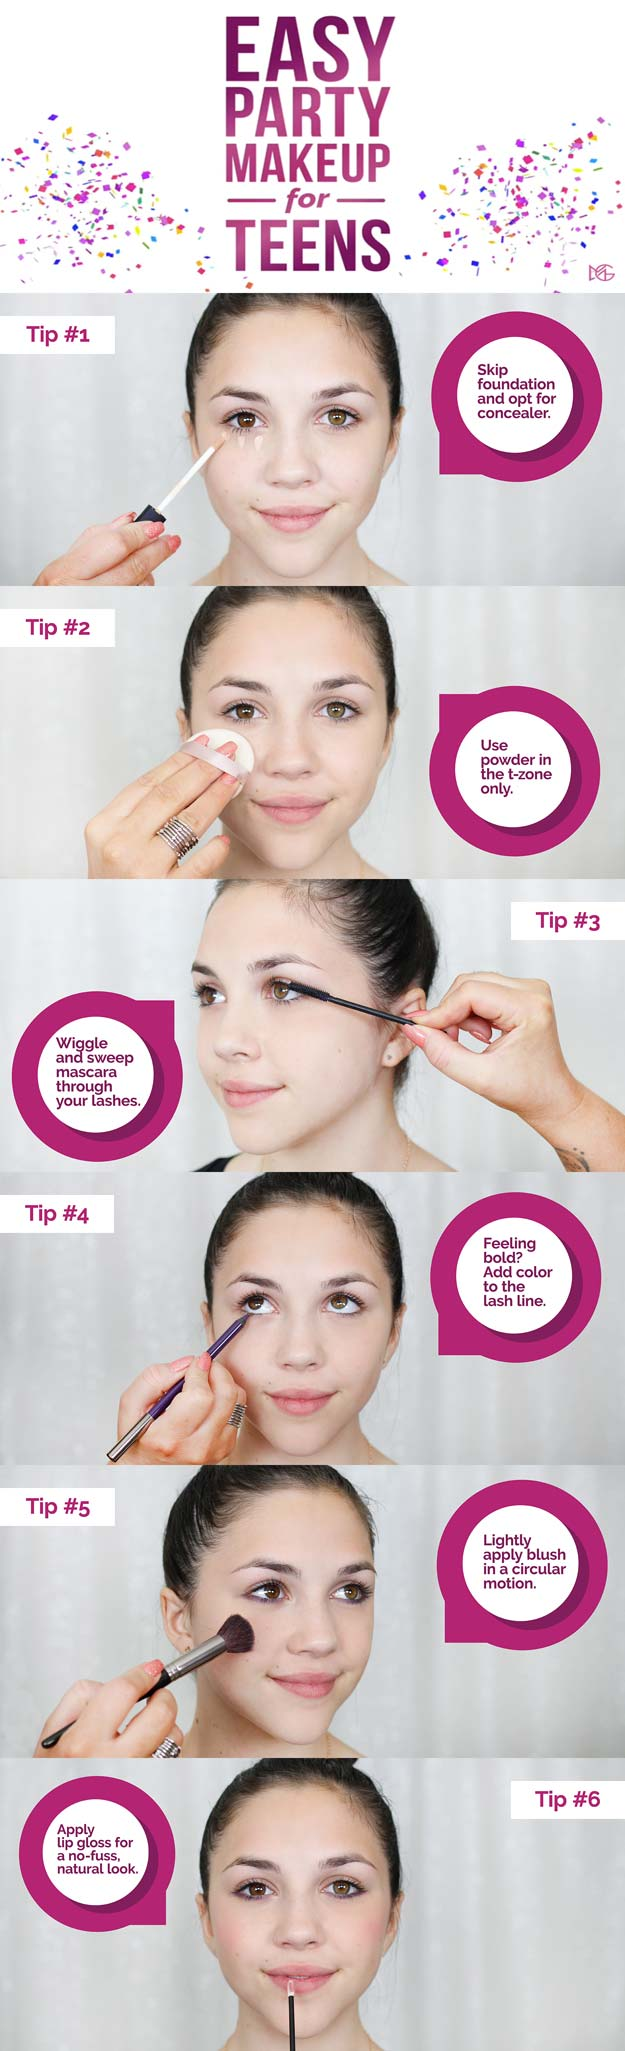 24 Cool Makeup Tutorials For Teens Diy Projects For Teens